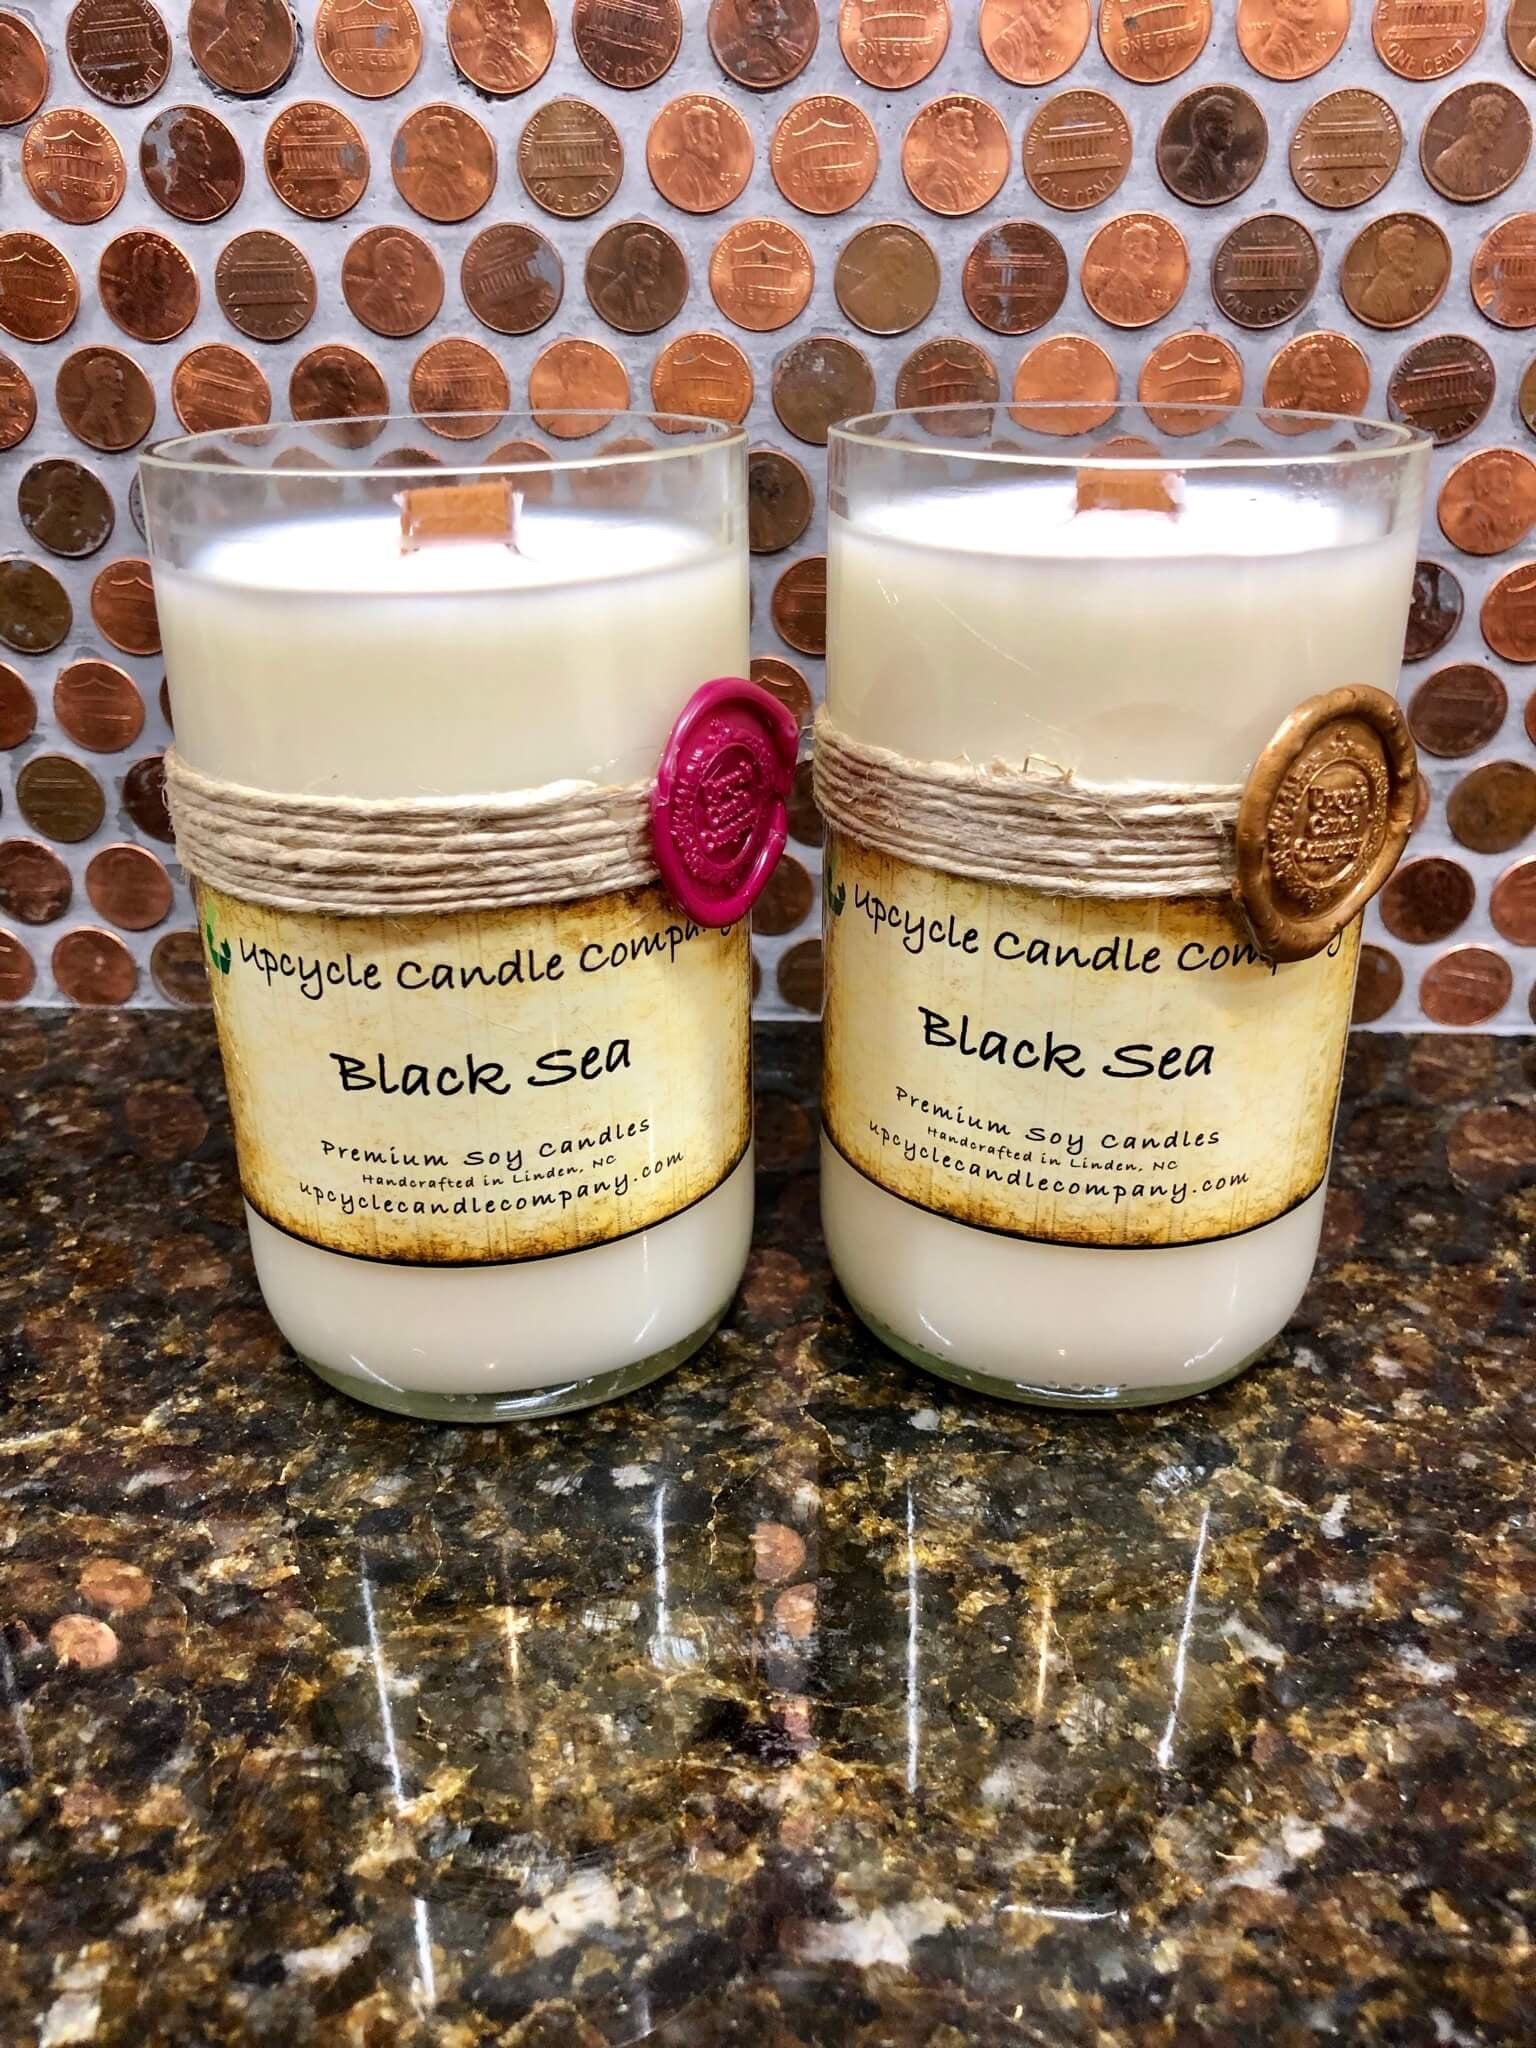 Black Sea Natural Soy Candle